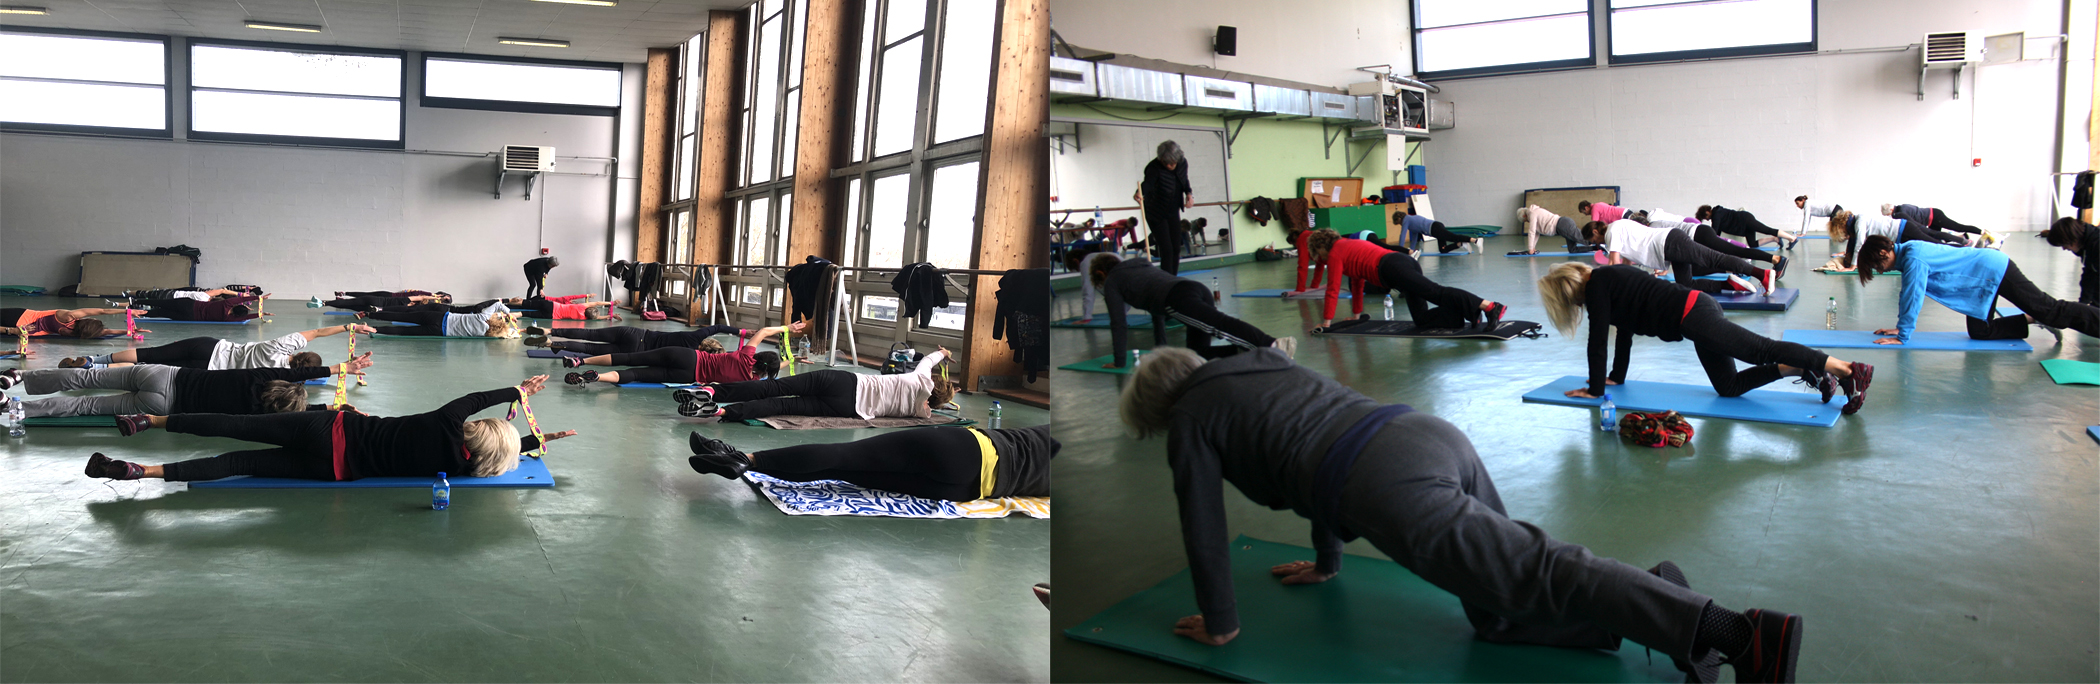 Montage gym gainage et étirement